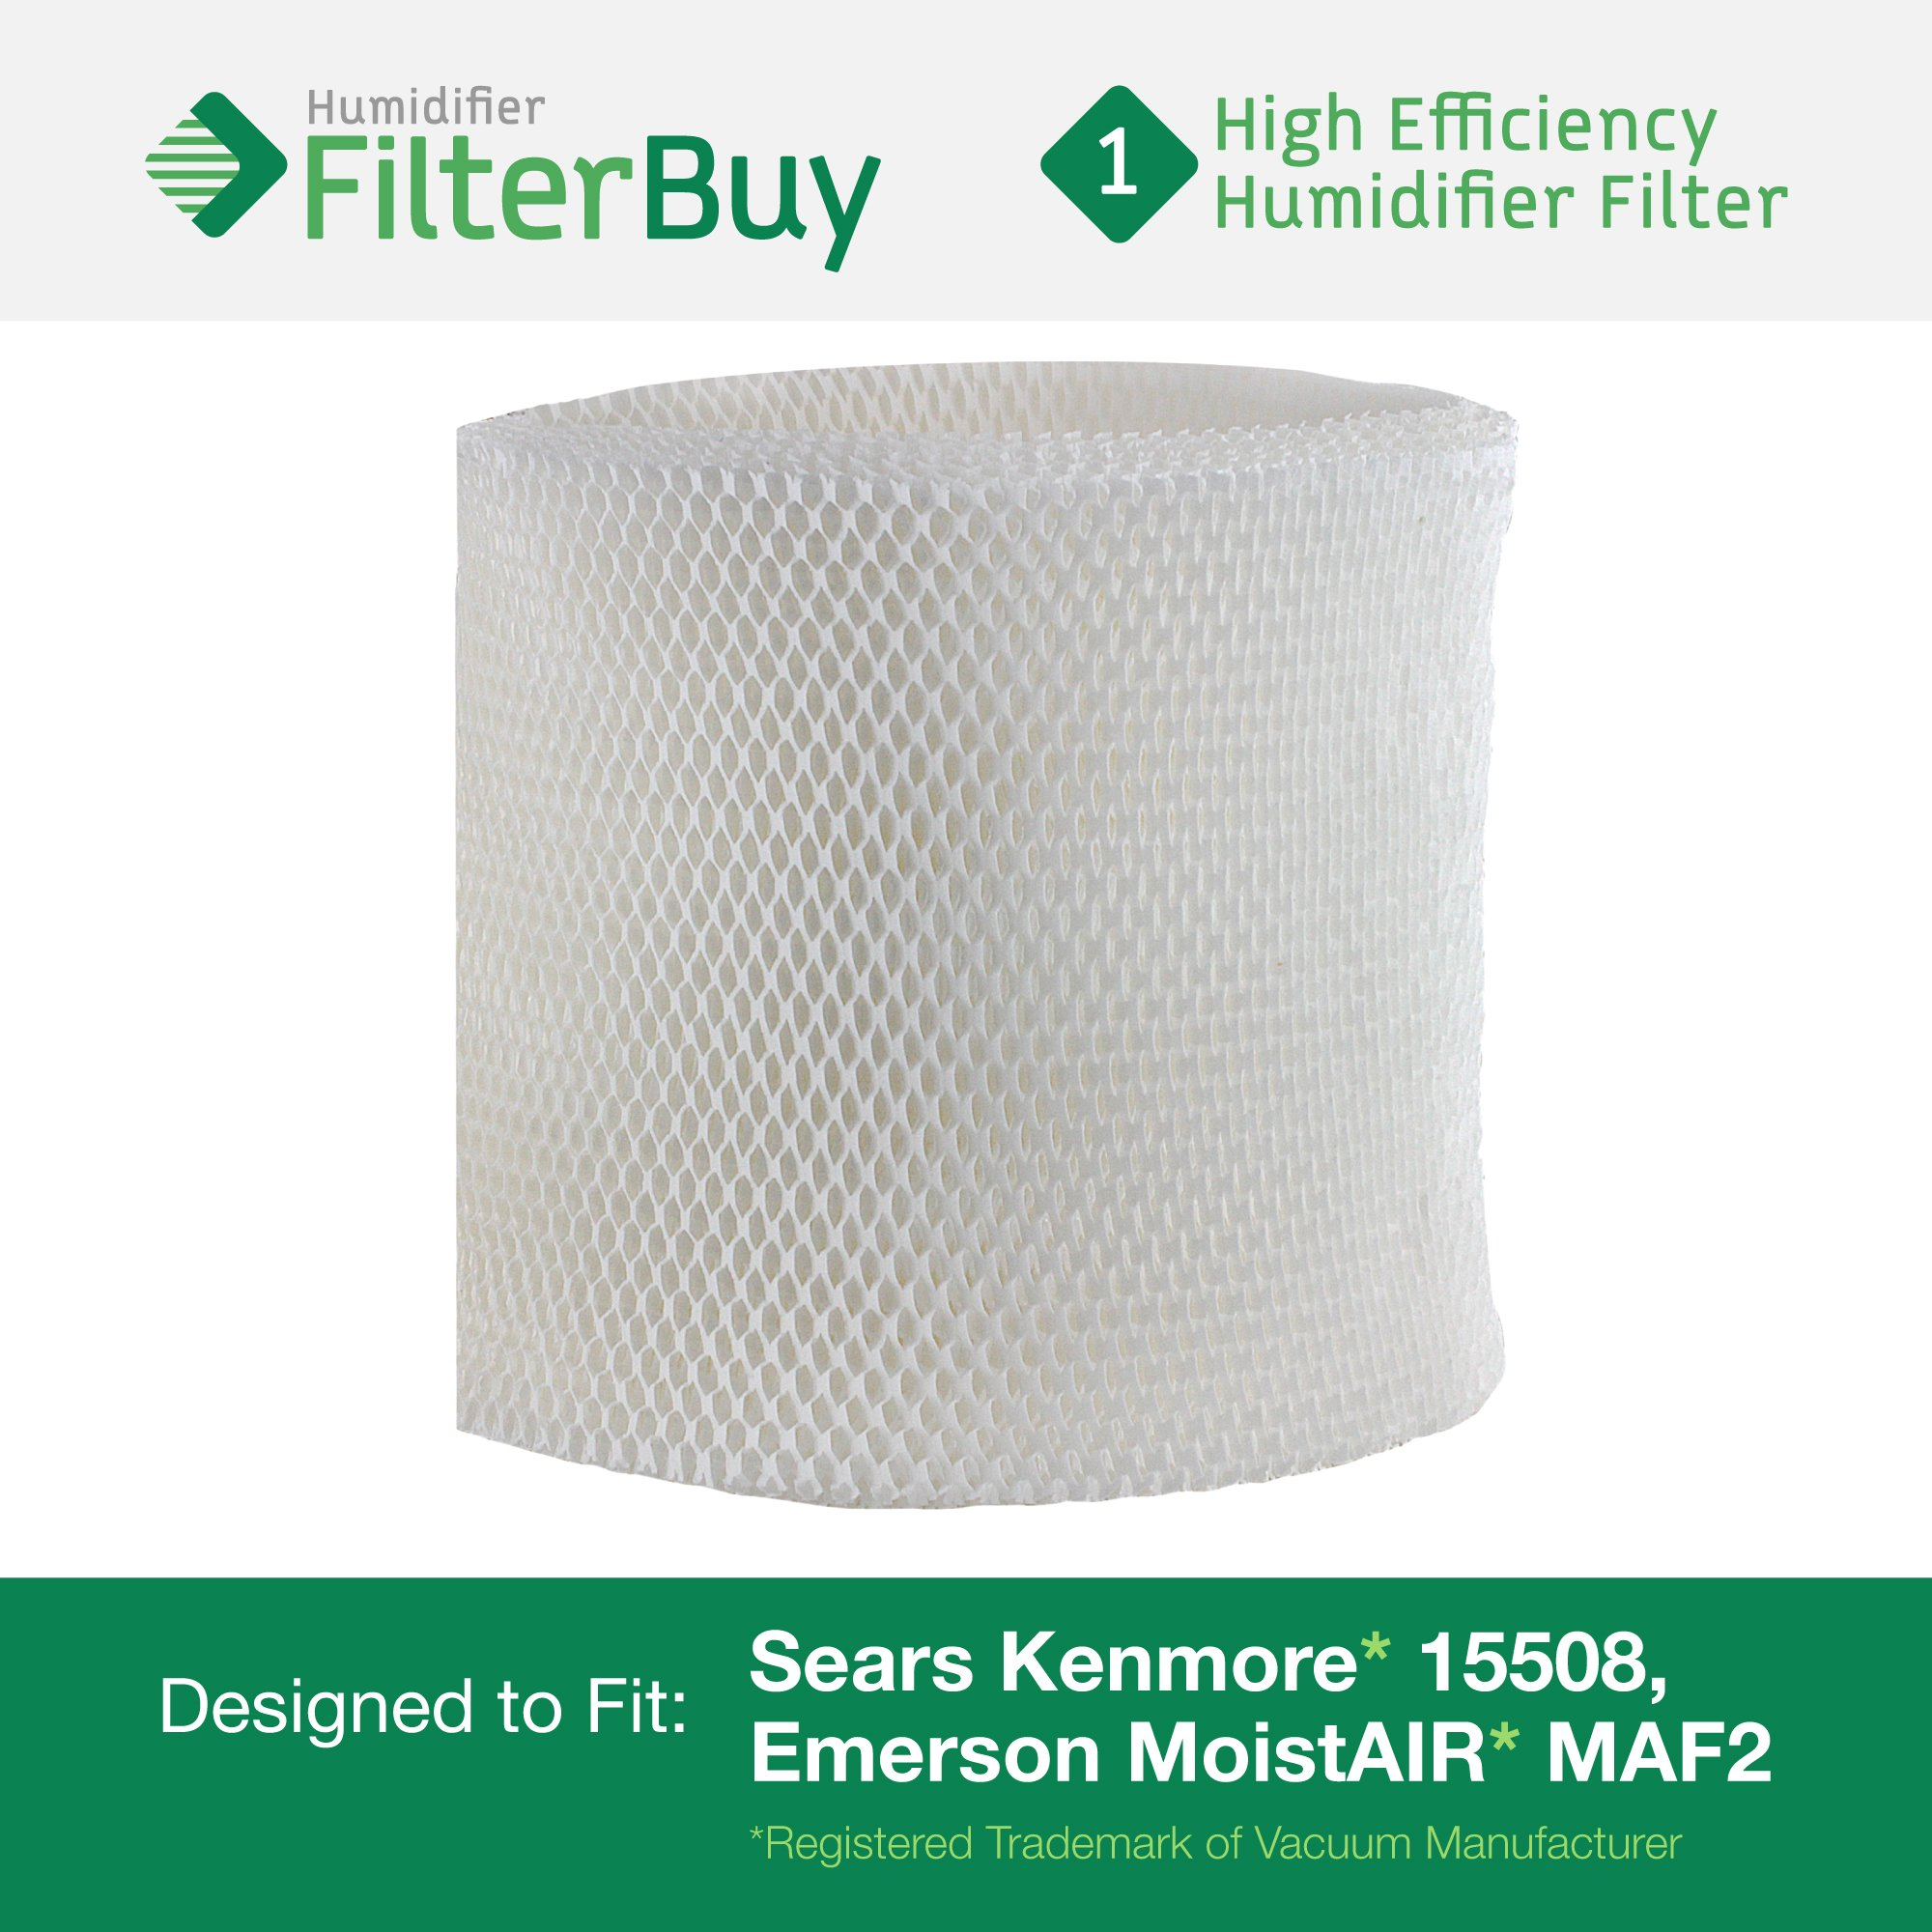 15508 Sears Kenmore Humidifier Wick Filter. Fits humidifier model numbers 17006, 15408, 29988, 154080, 29706, 299880C, 3215508 and 4215508. Designed by AFB in the USA.